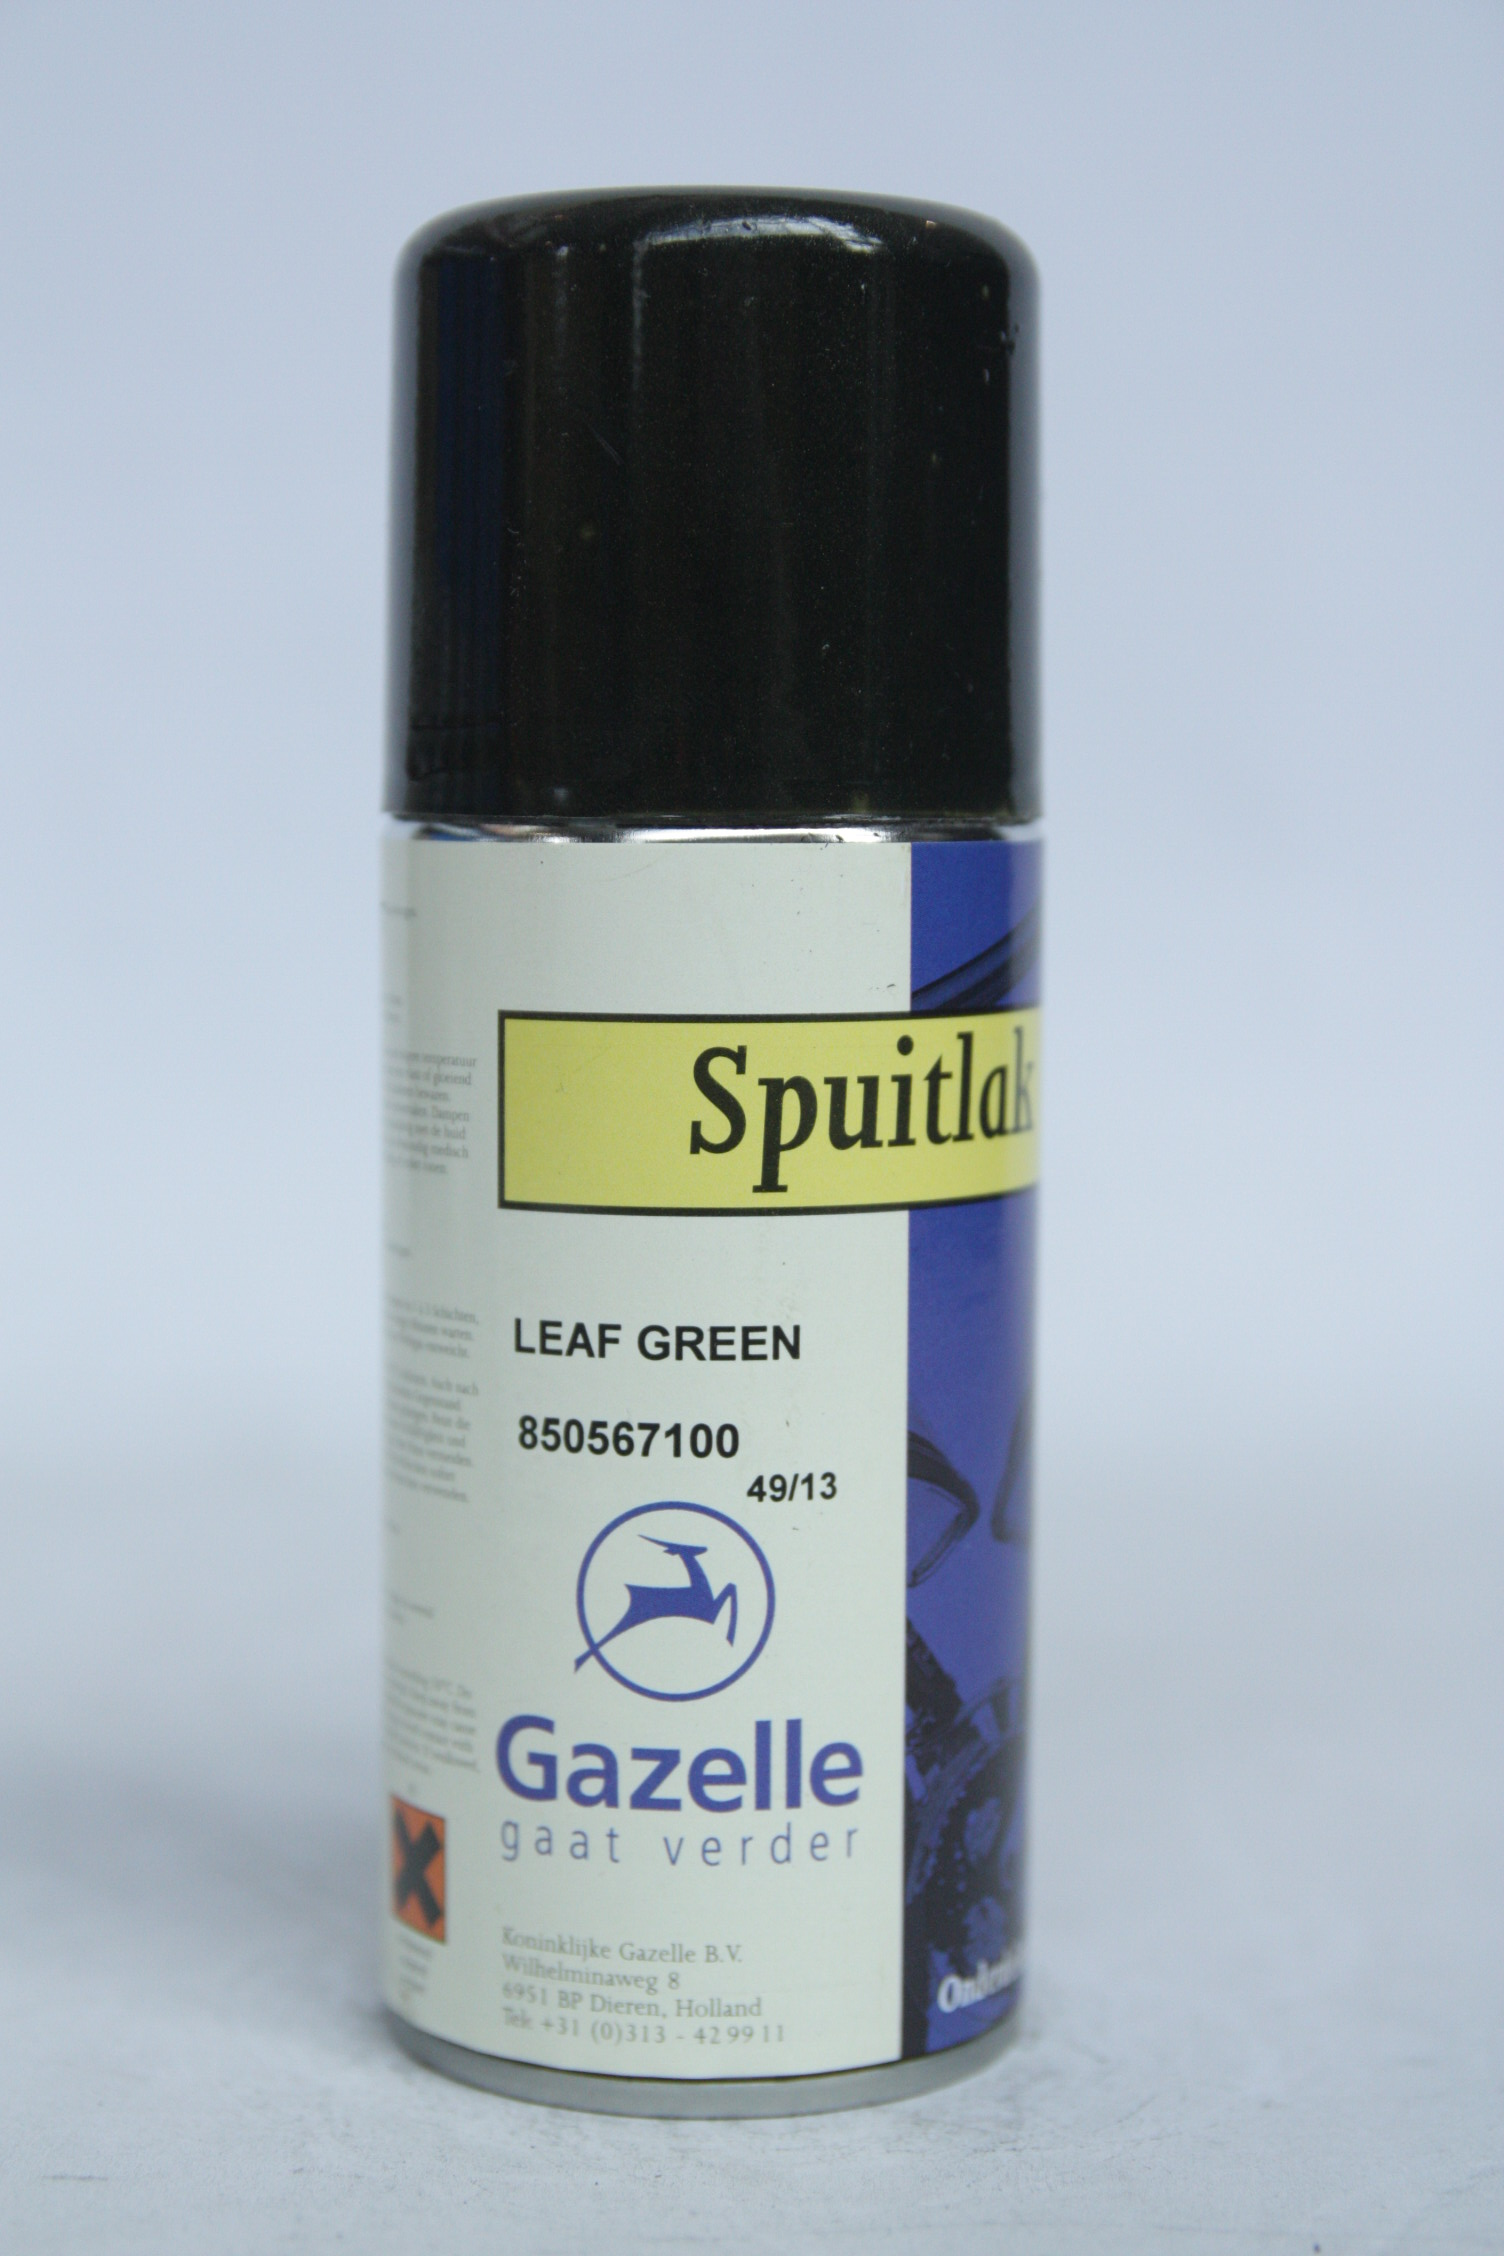 Gazelle Spuitlak 671 - Timberline Green